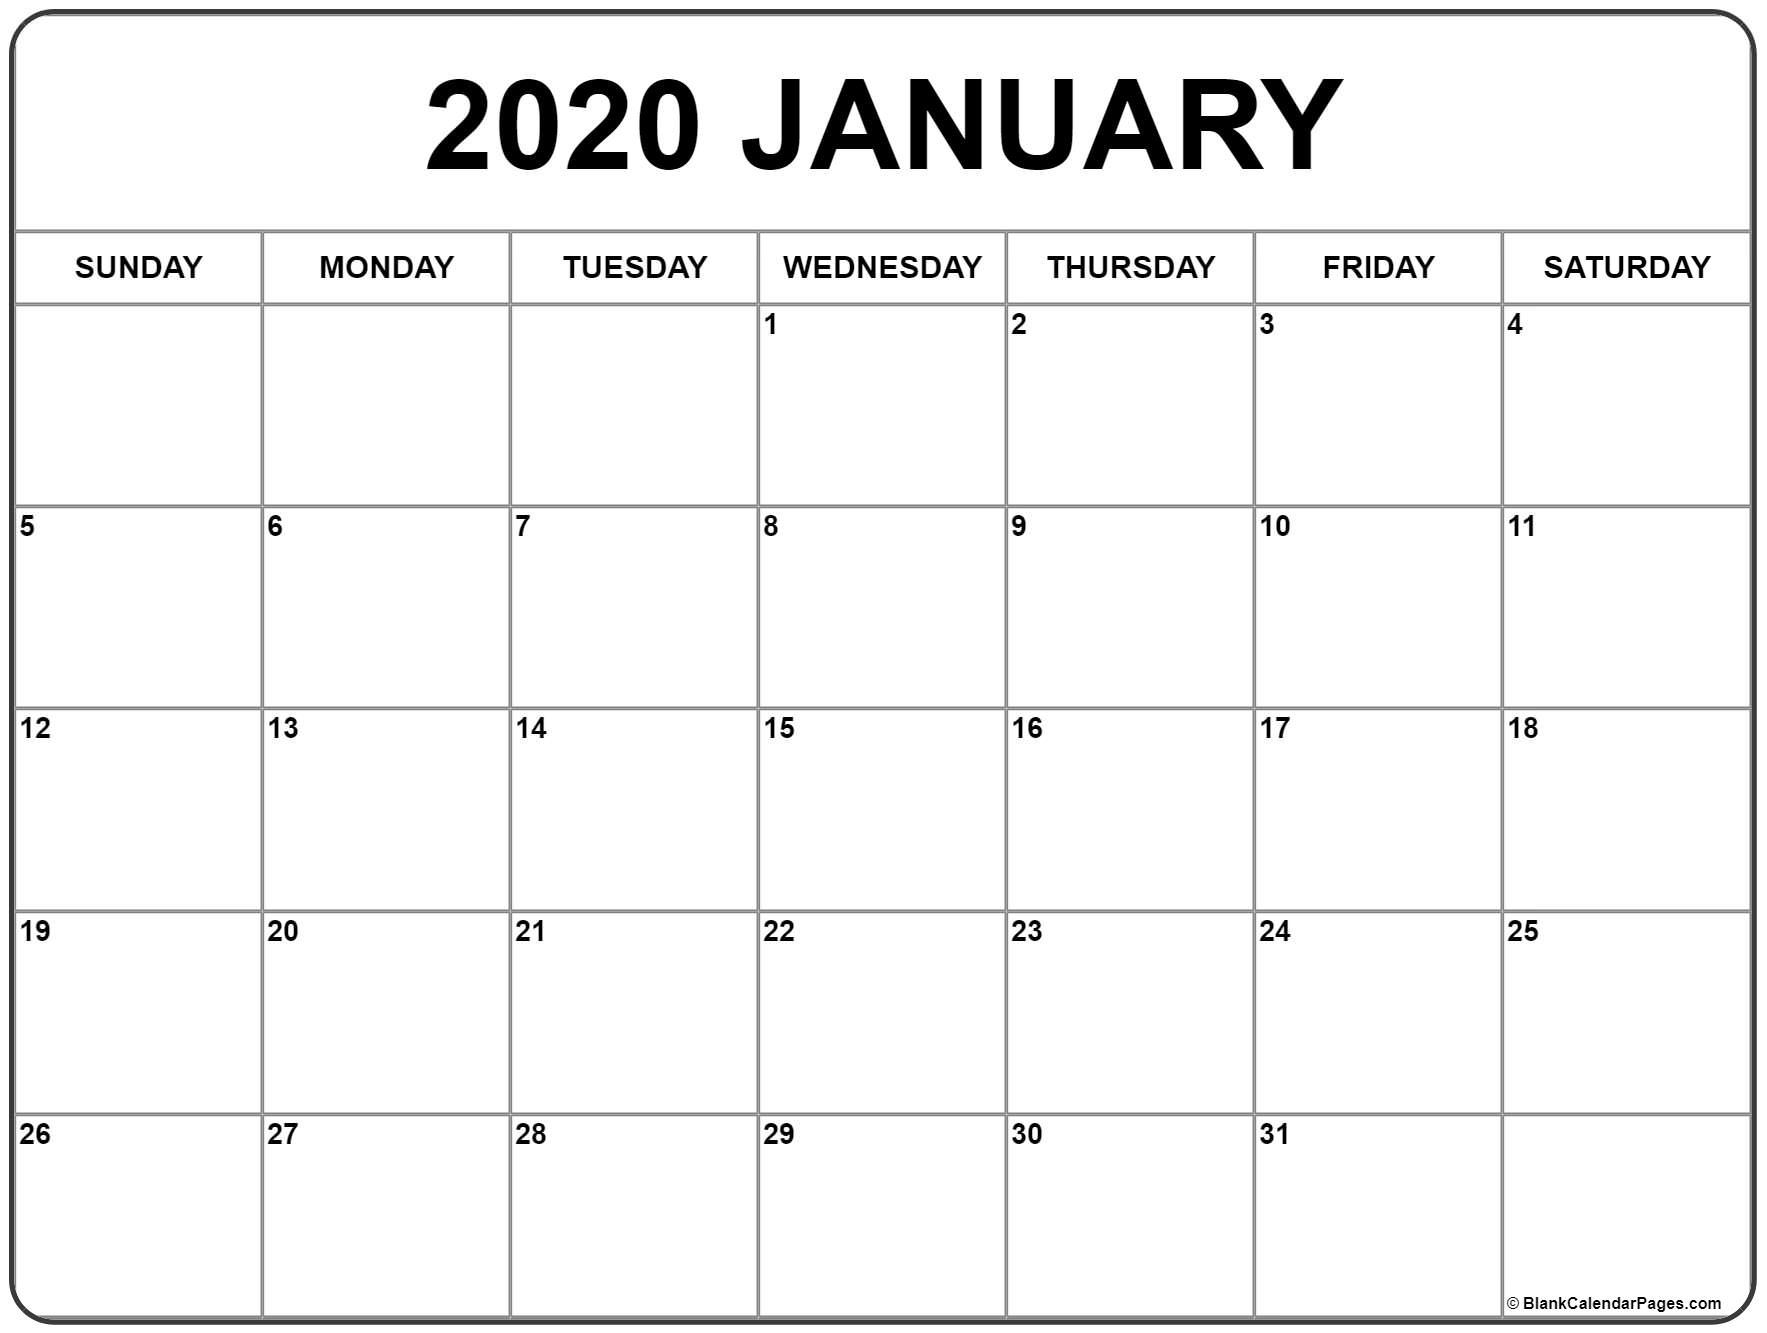 January 2020 Calendar | Free Printable Monthly Calendars inside 11 X 8.5 Calendar Pages 2020 Free